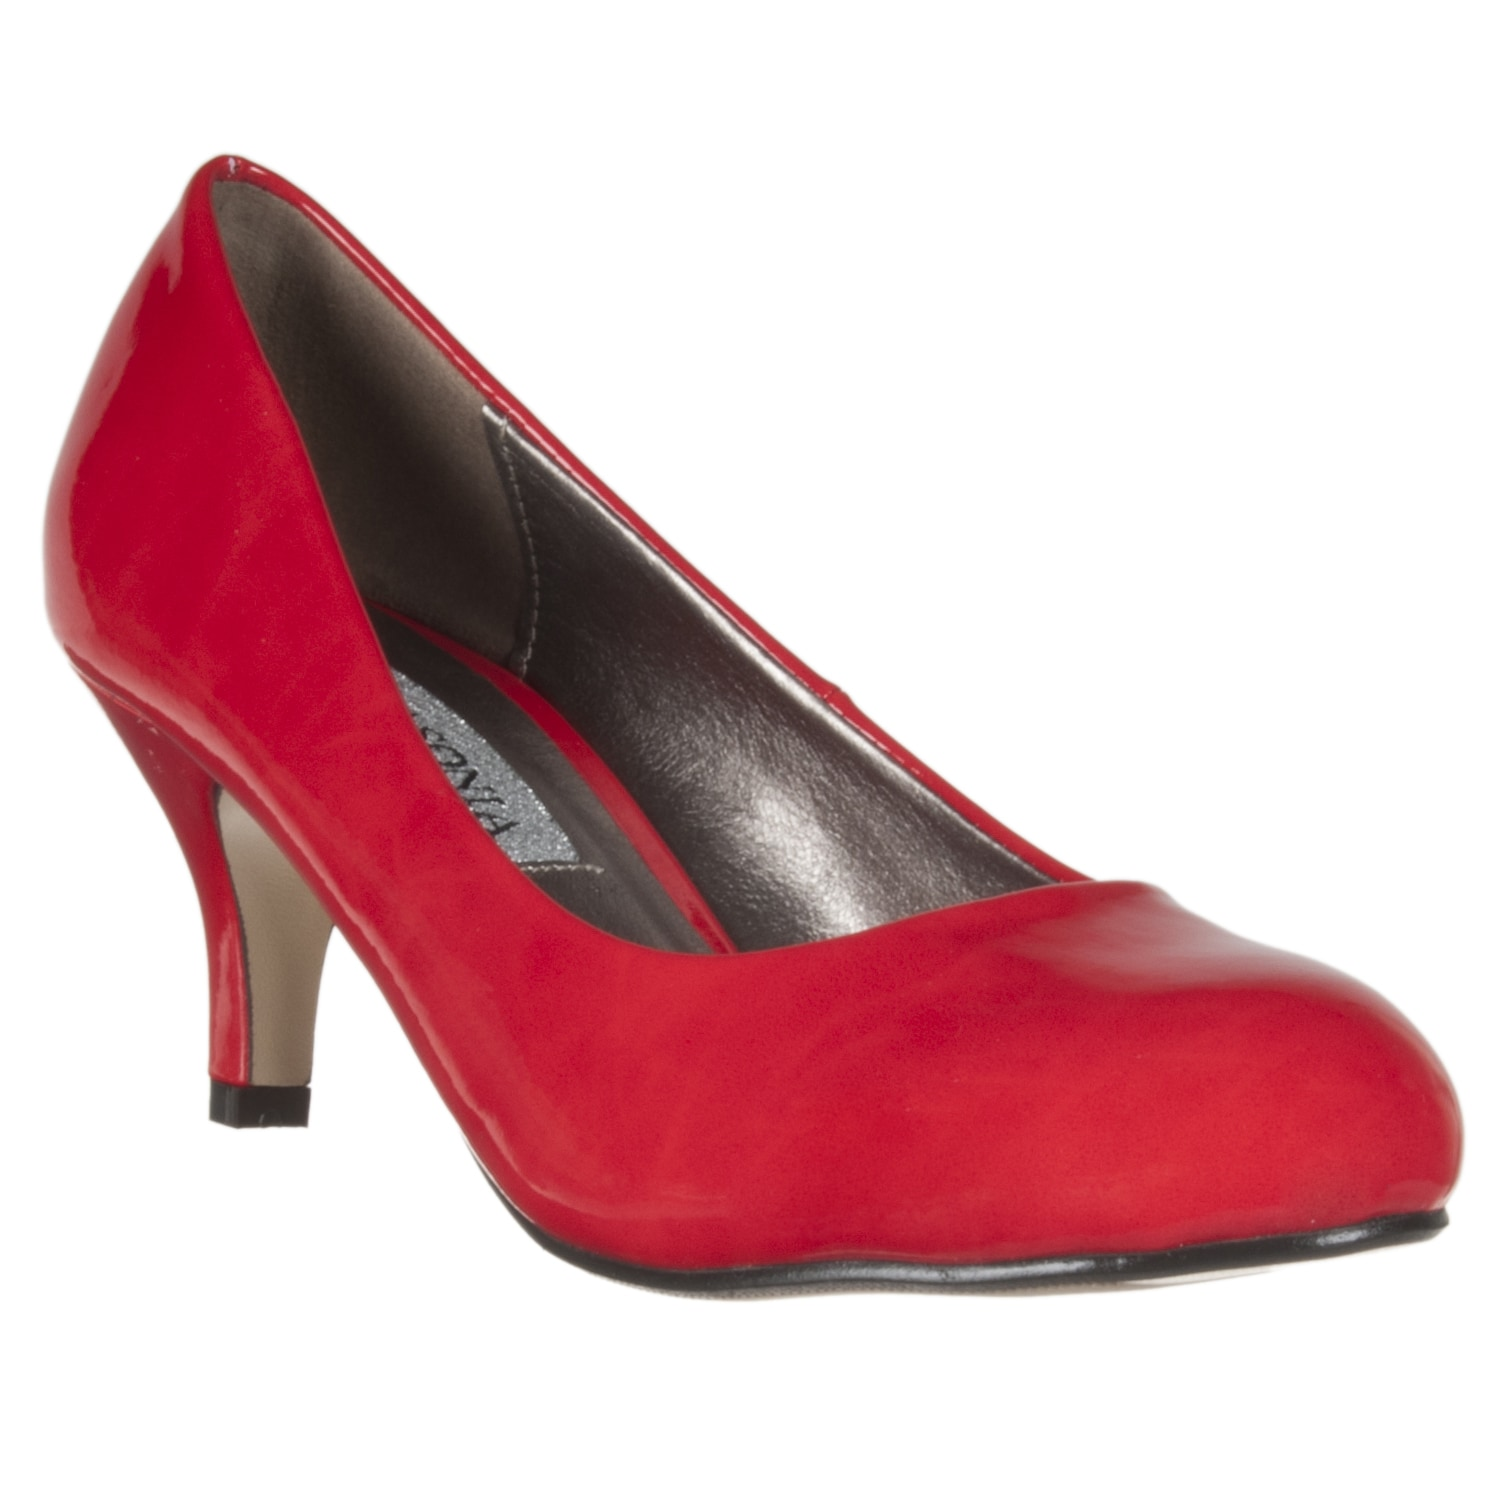 Riverberry Women's Red Patent Mid-Heel Pumps